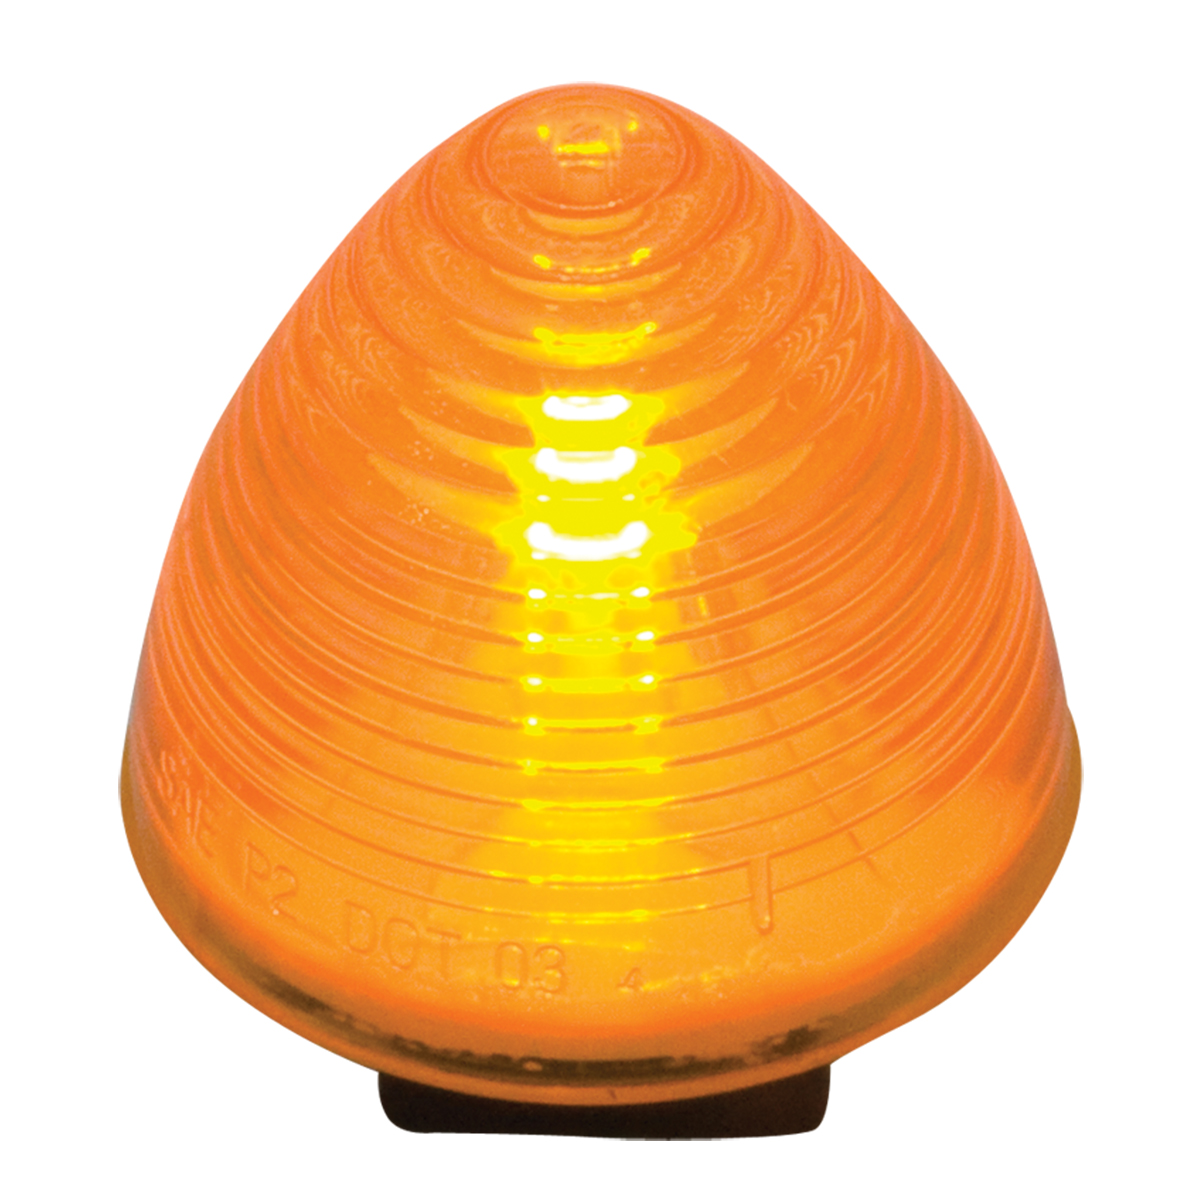 #80942 Incandescent Beehive Amber/Amber Sealed Light